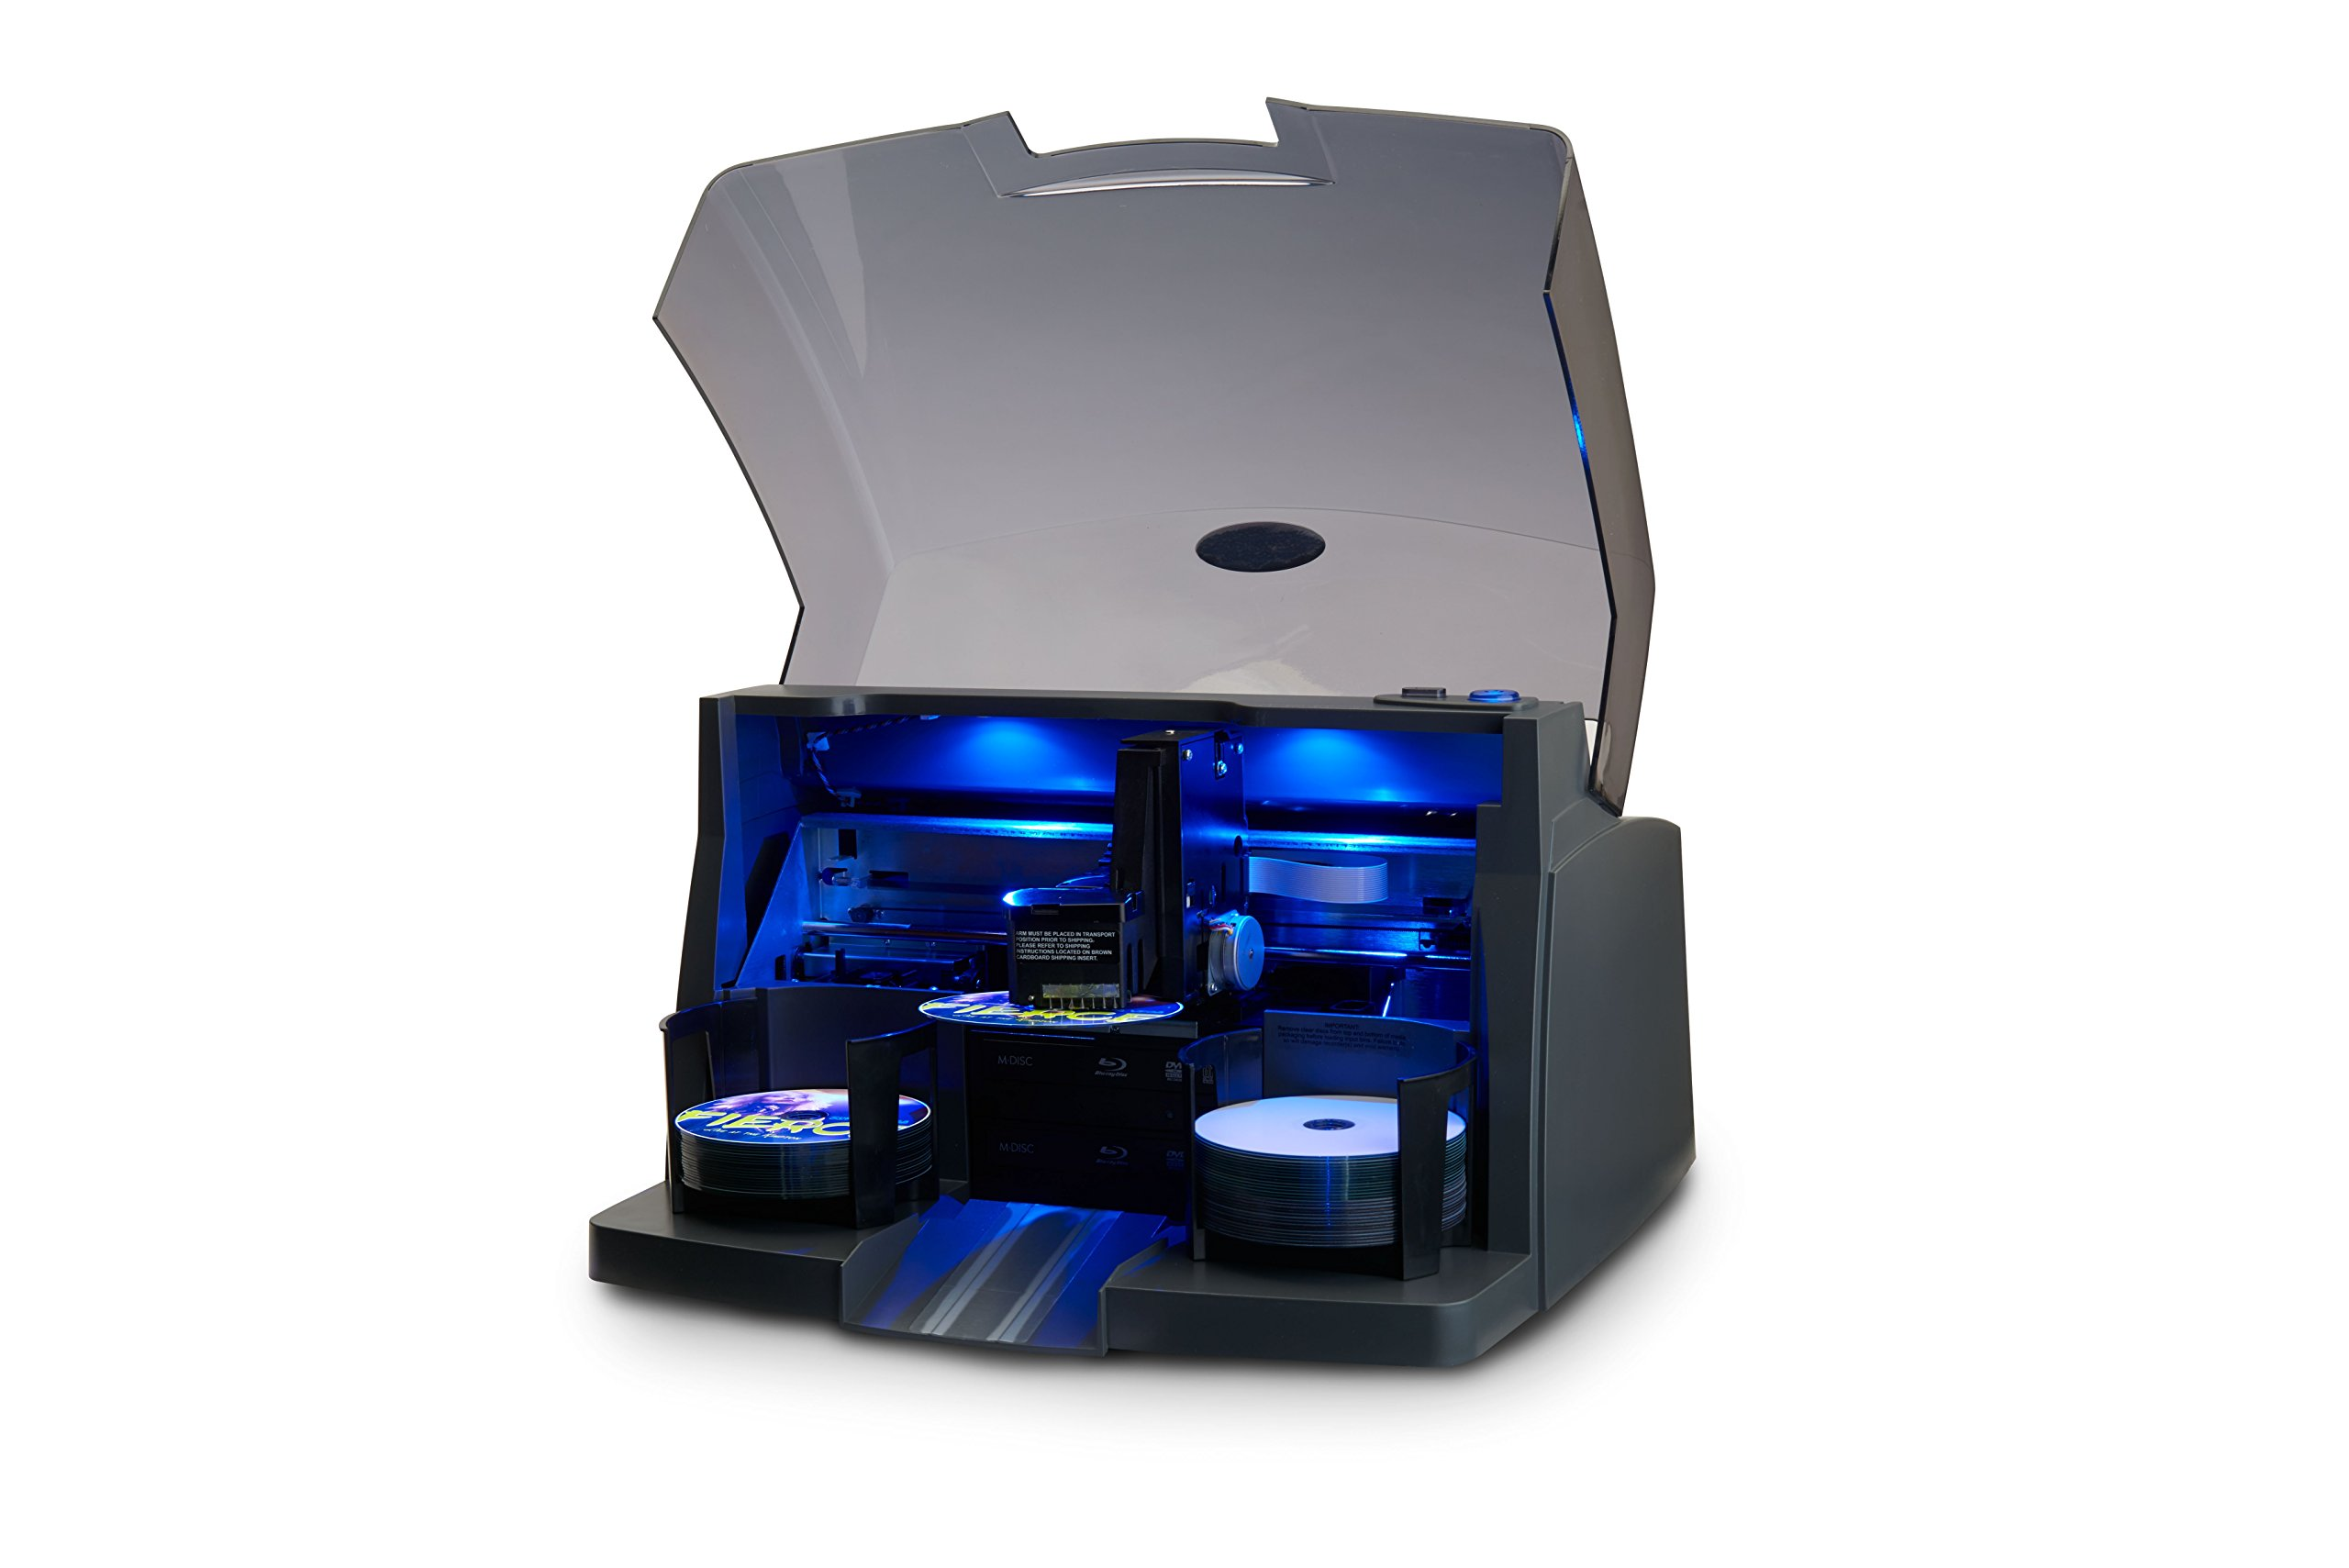 Primera Bravo 4201 Disc Duplicator and Printer - Automatically Copy and Print CDs and DVDs. New Model. by Primera Technology (Image #2)